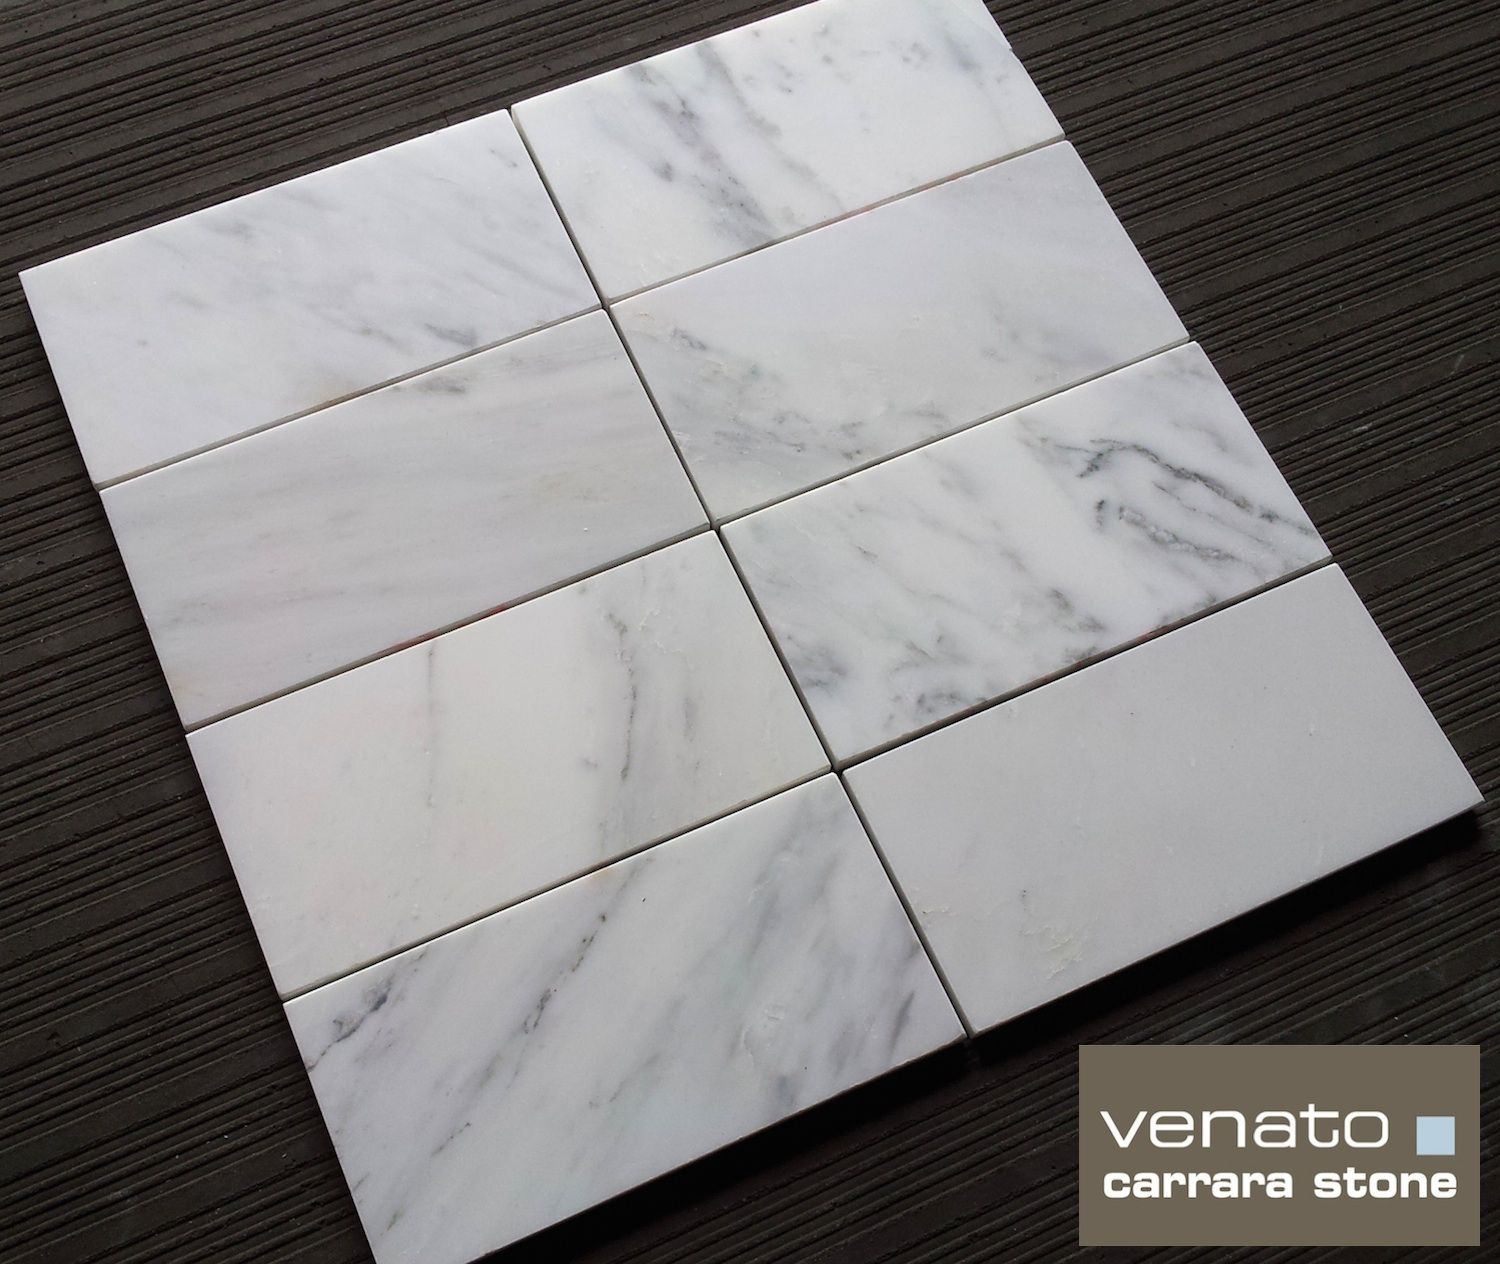 Carrara Venato 4x8 Subway Tile Available Online From The Builder Depot Perfect For